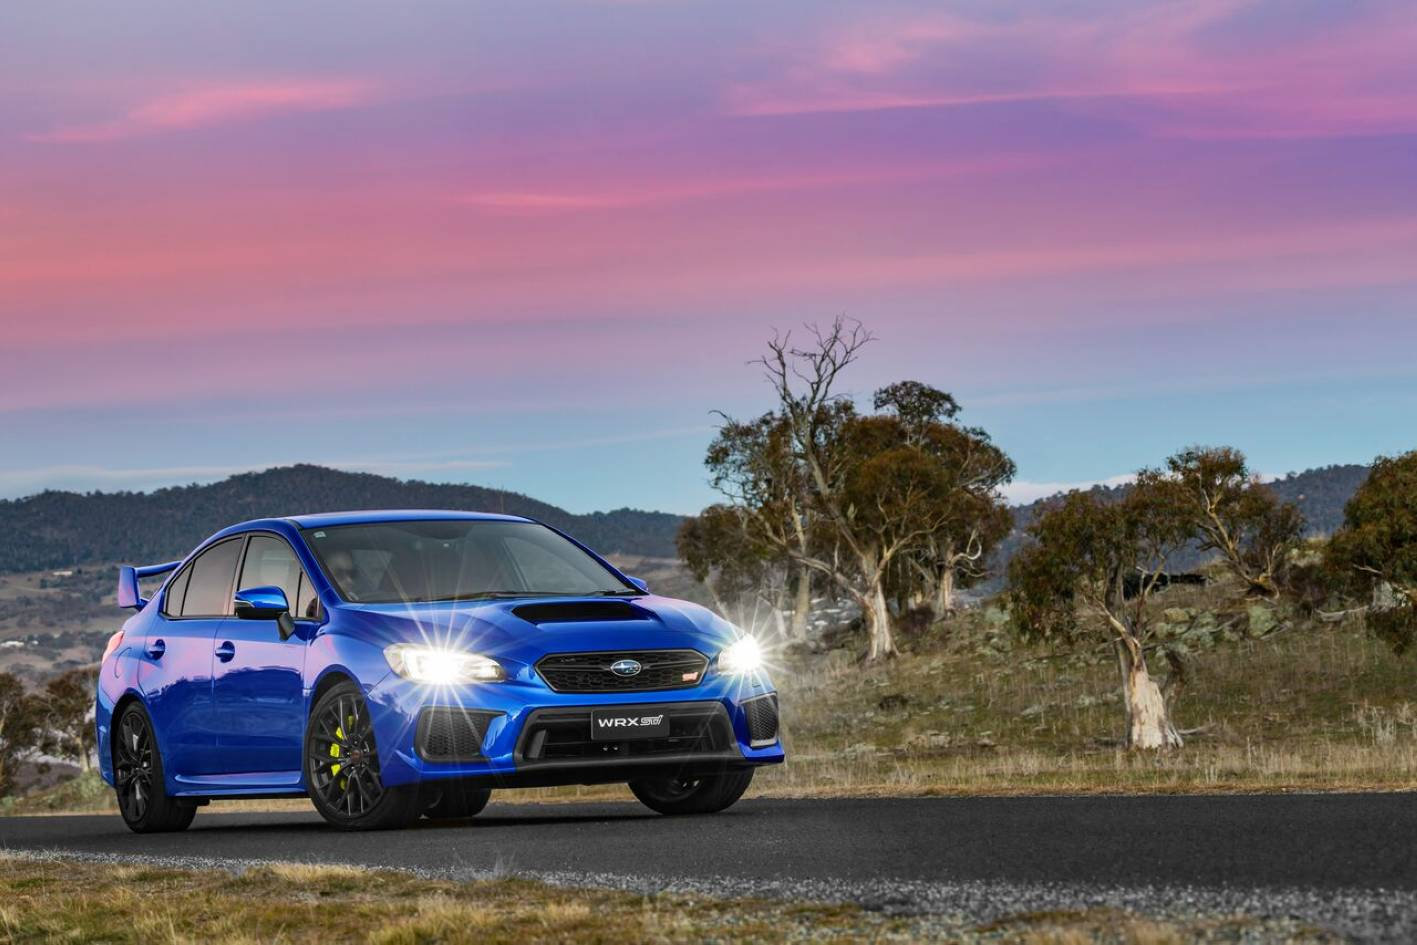 WRX STI value proposition gets better and better over time - this is a lot of performance for $55k